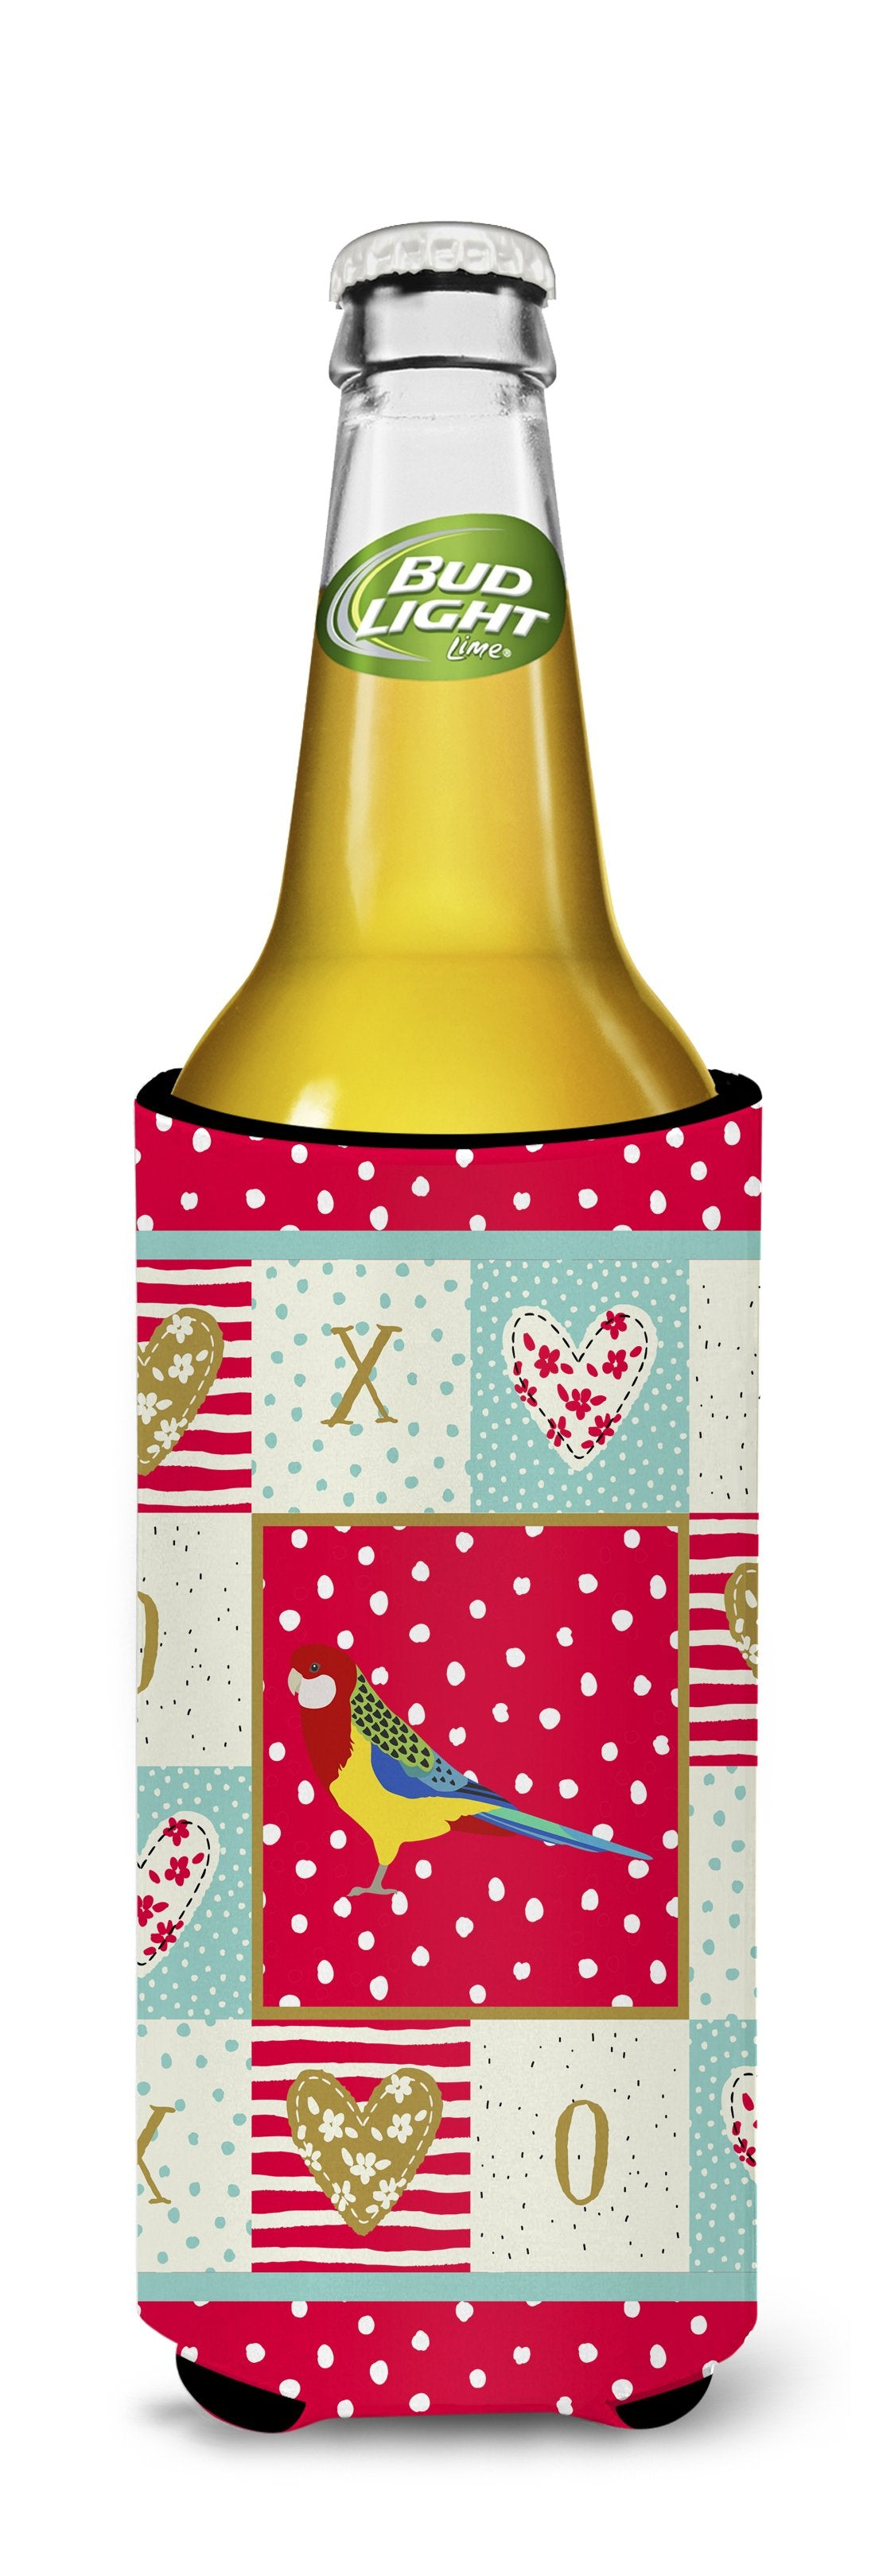 Rosella Love Michelob Ultra Hugger for slim cans CK5526MUK by Caroline's Treasures